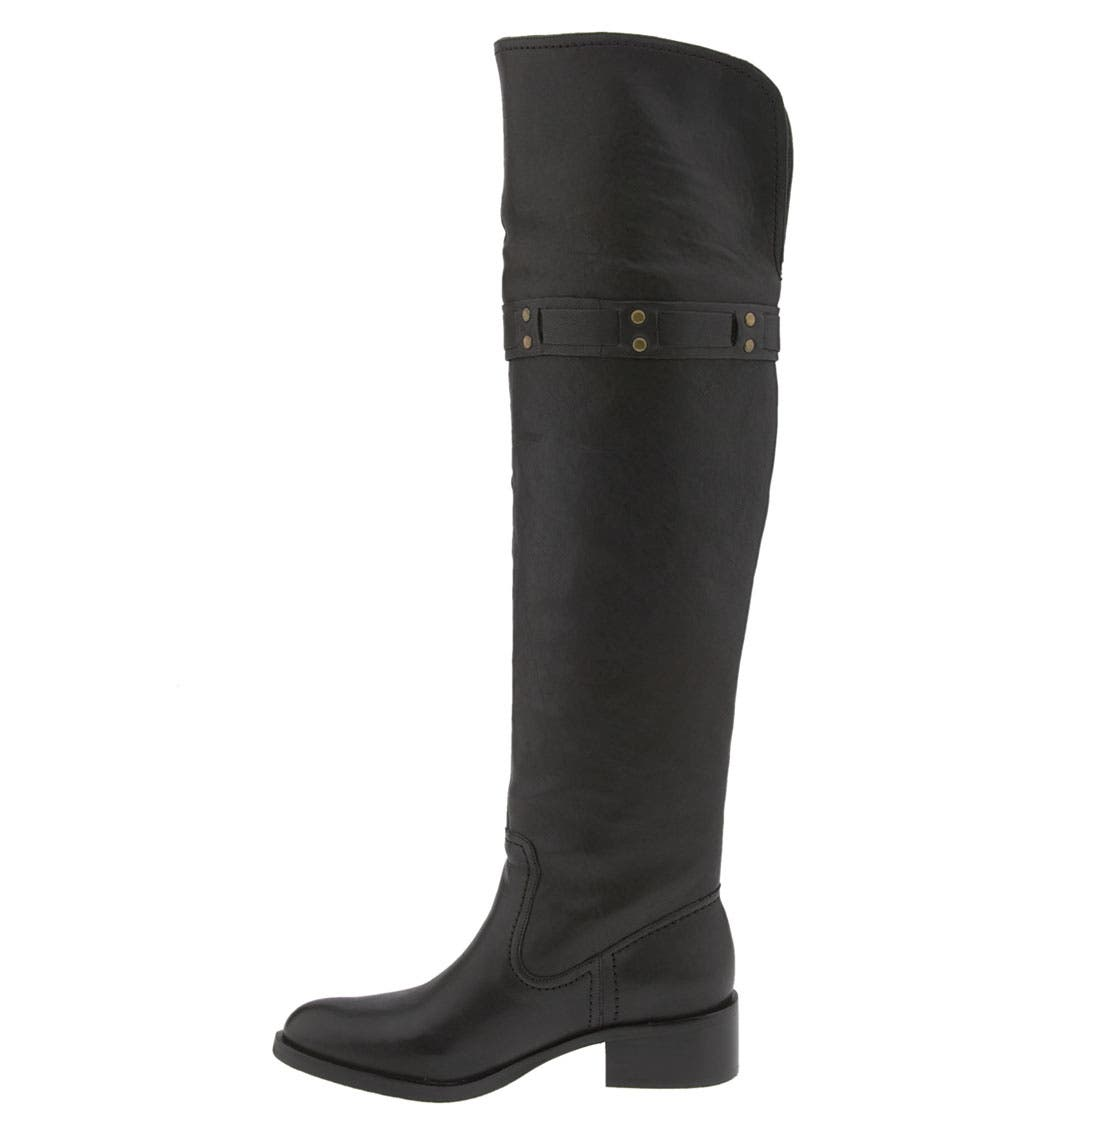 JESSICA SIMPSON, 'Clancey' Over the Knee Boot, Alternate thumbnail 4, color, 001